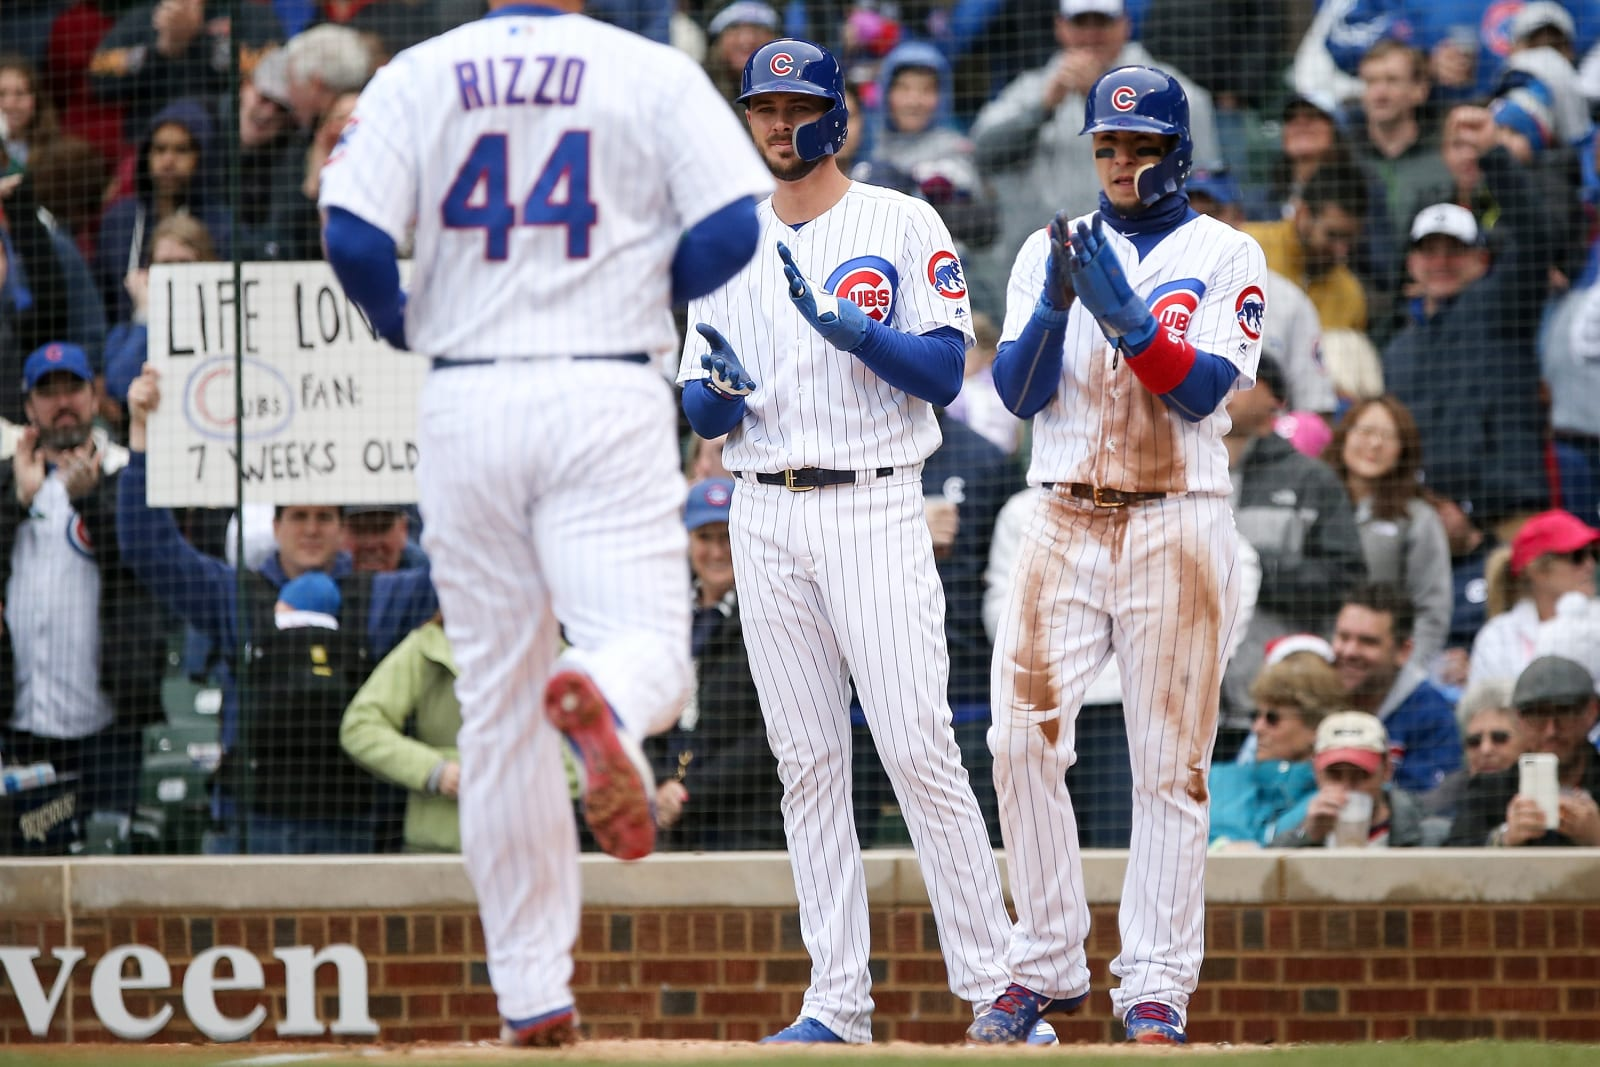 Chicago Cubs / Anthony Rizzo / Javier Baez / Kris Bryant